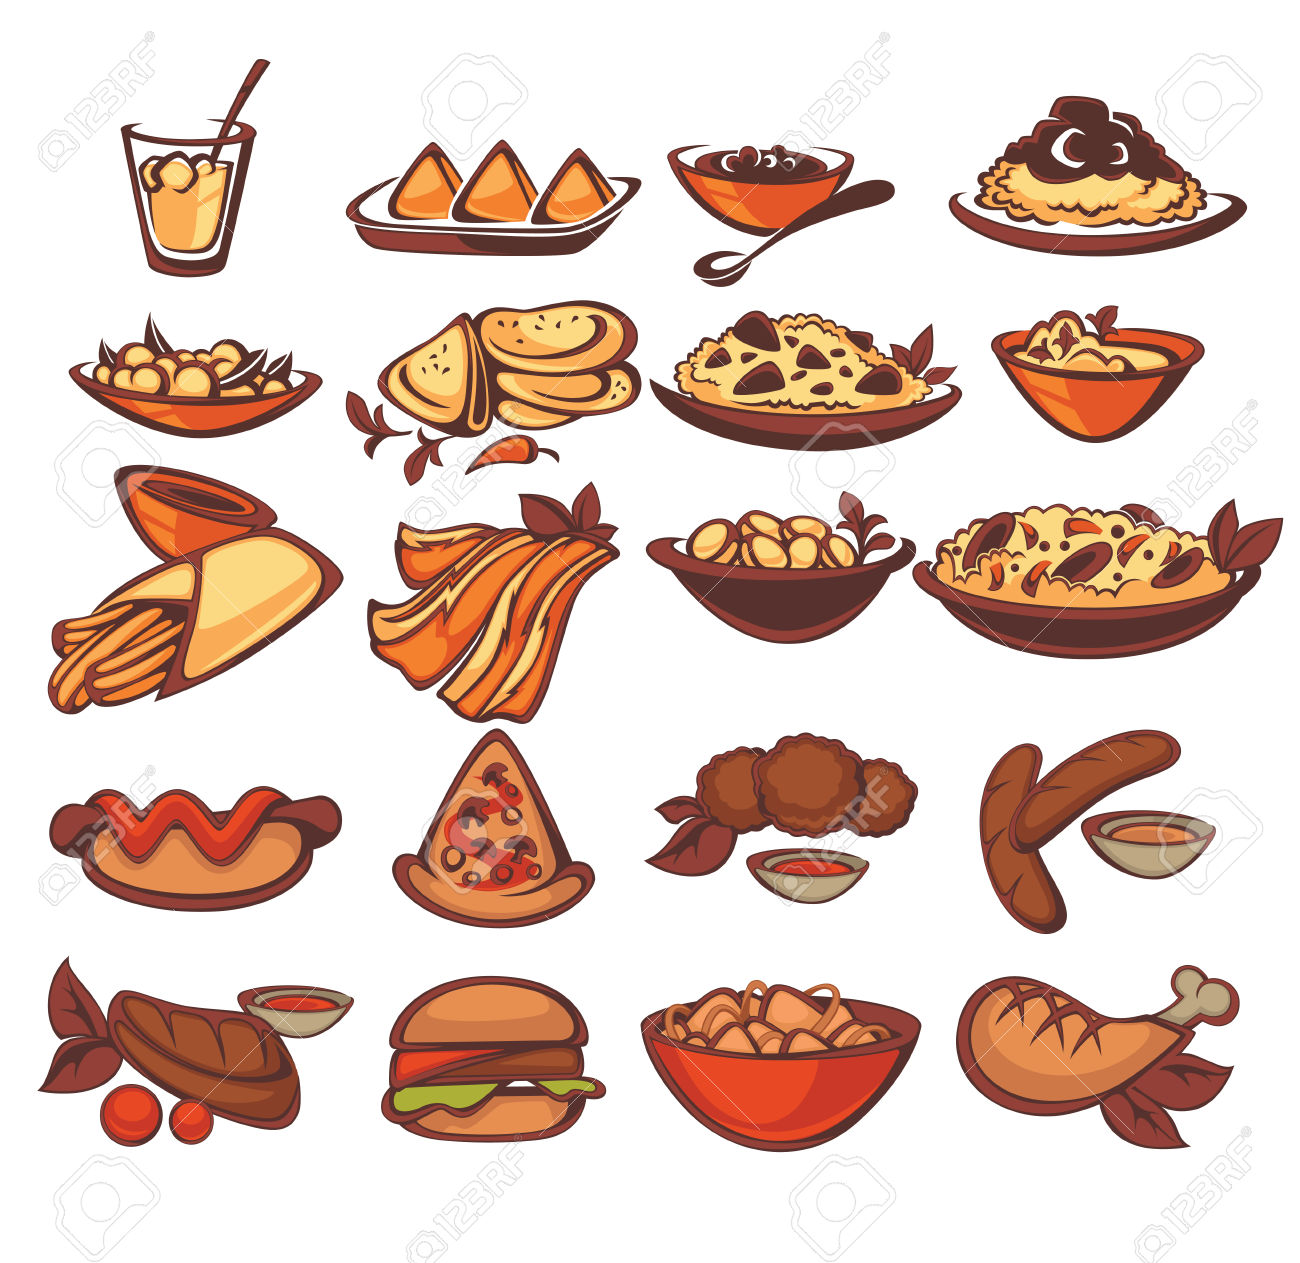 31678 Food free clipart.